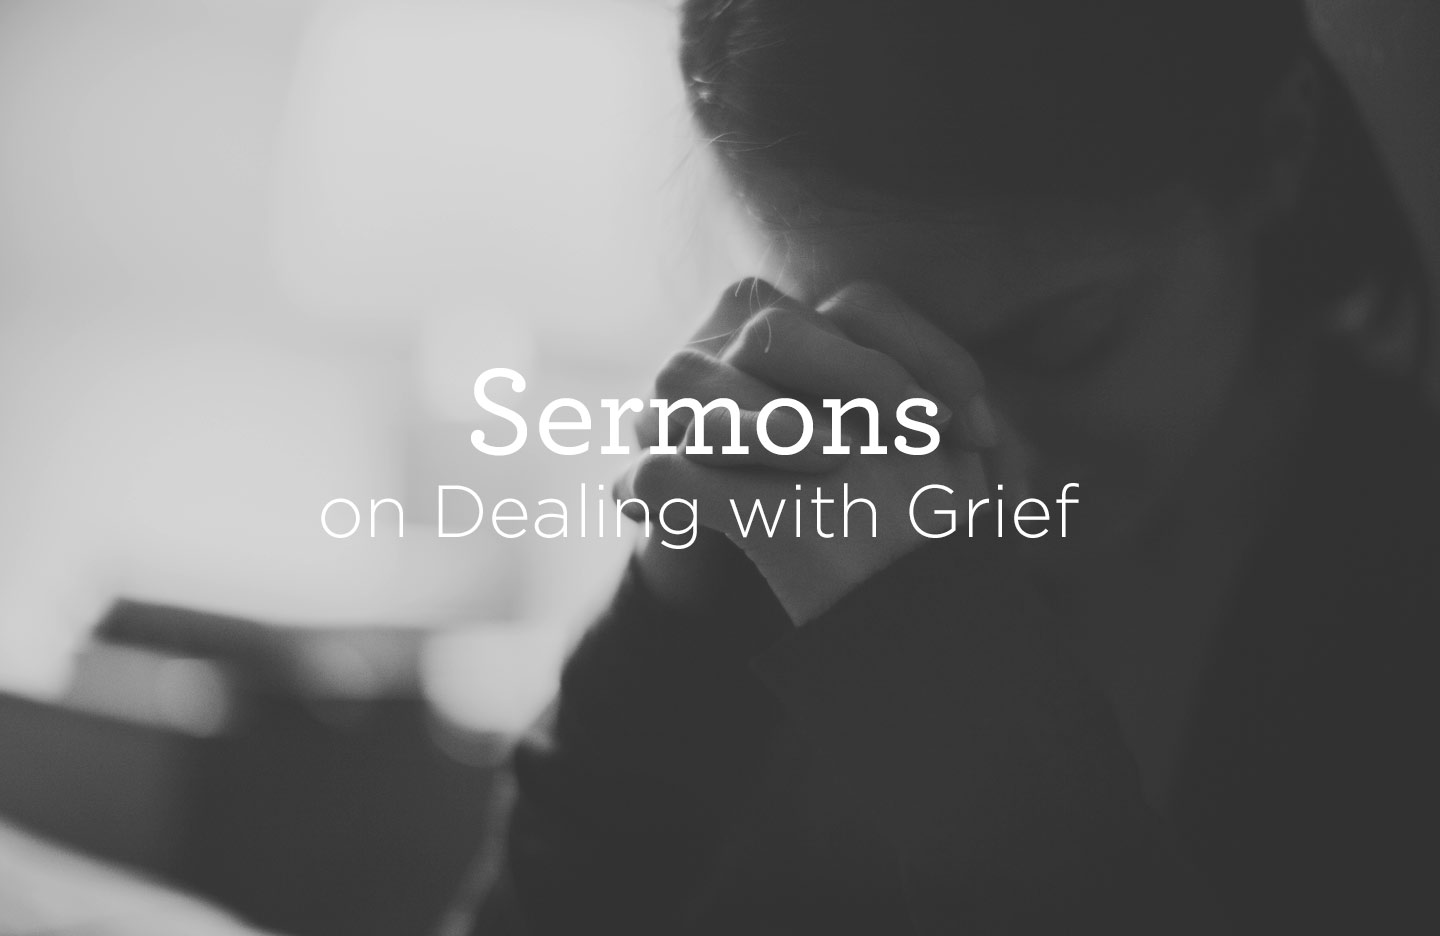 thumbnail image for Sermons on Dealing with Grief